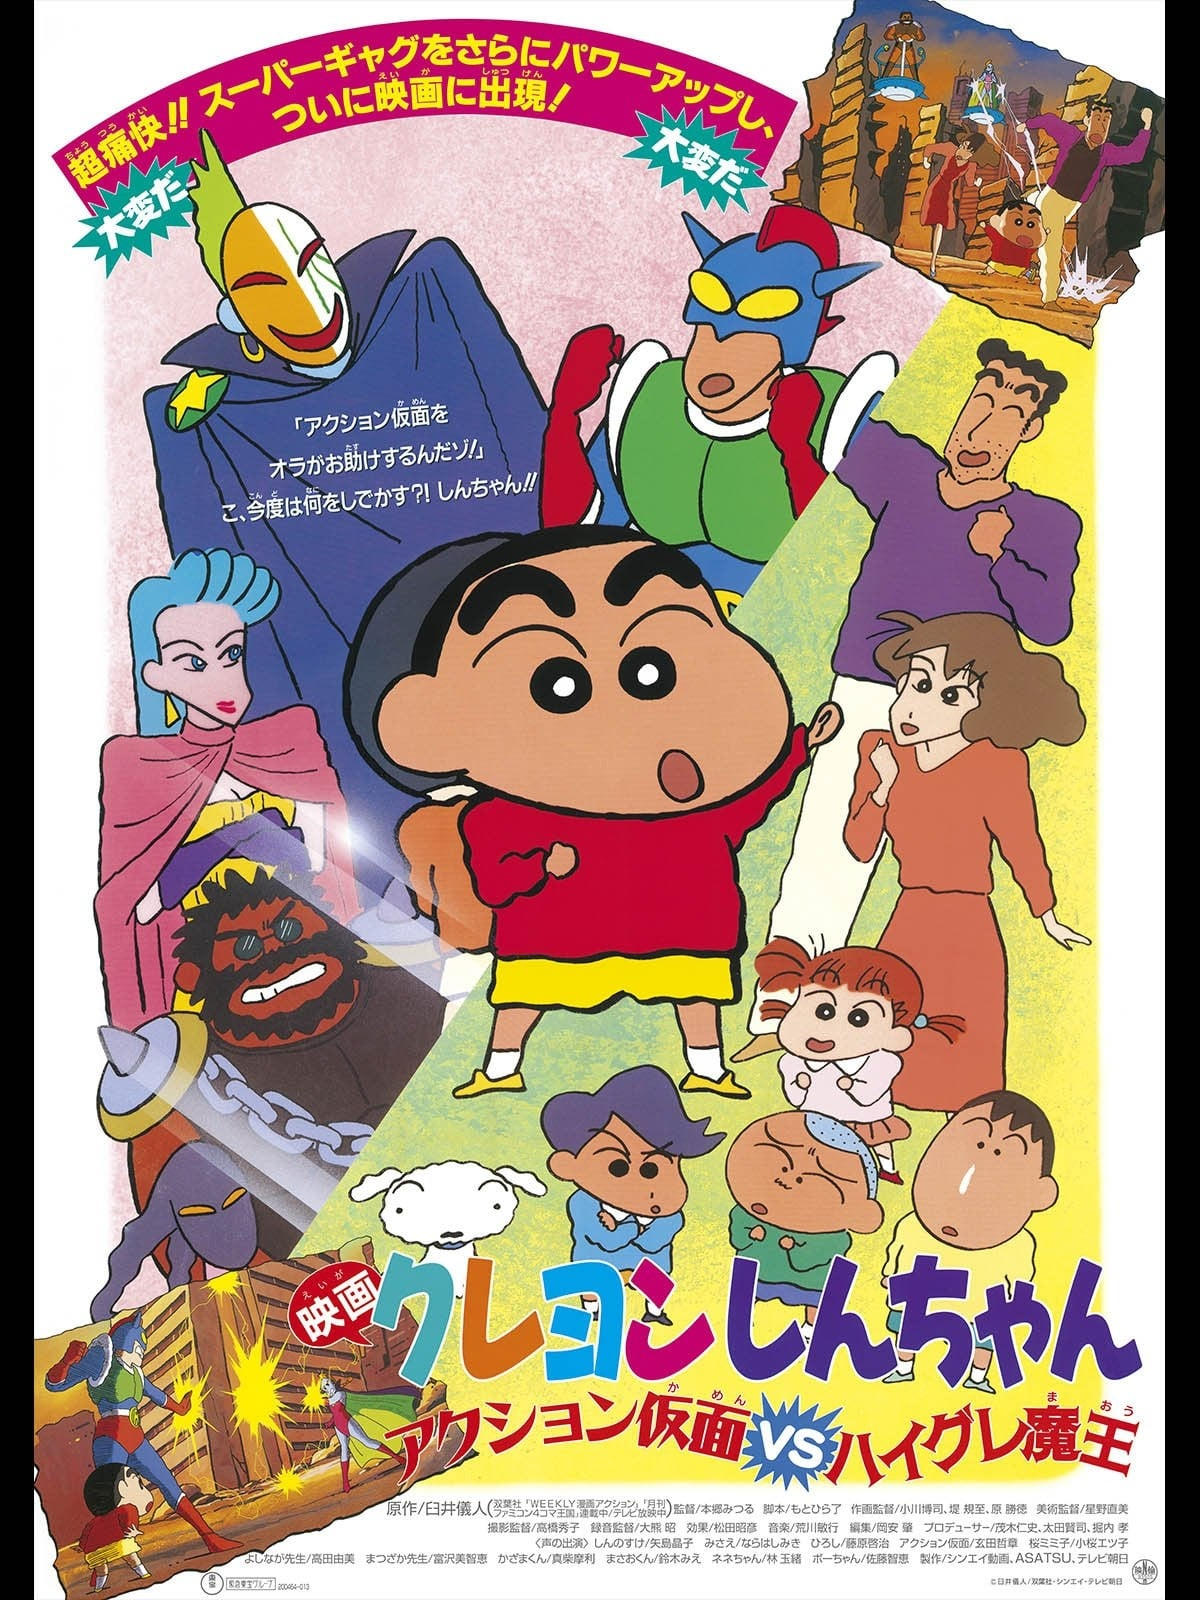 Crayon Shin-chan: Action Mask vs. Leotard Devil (1993)